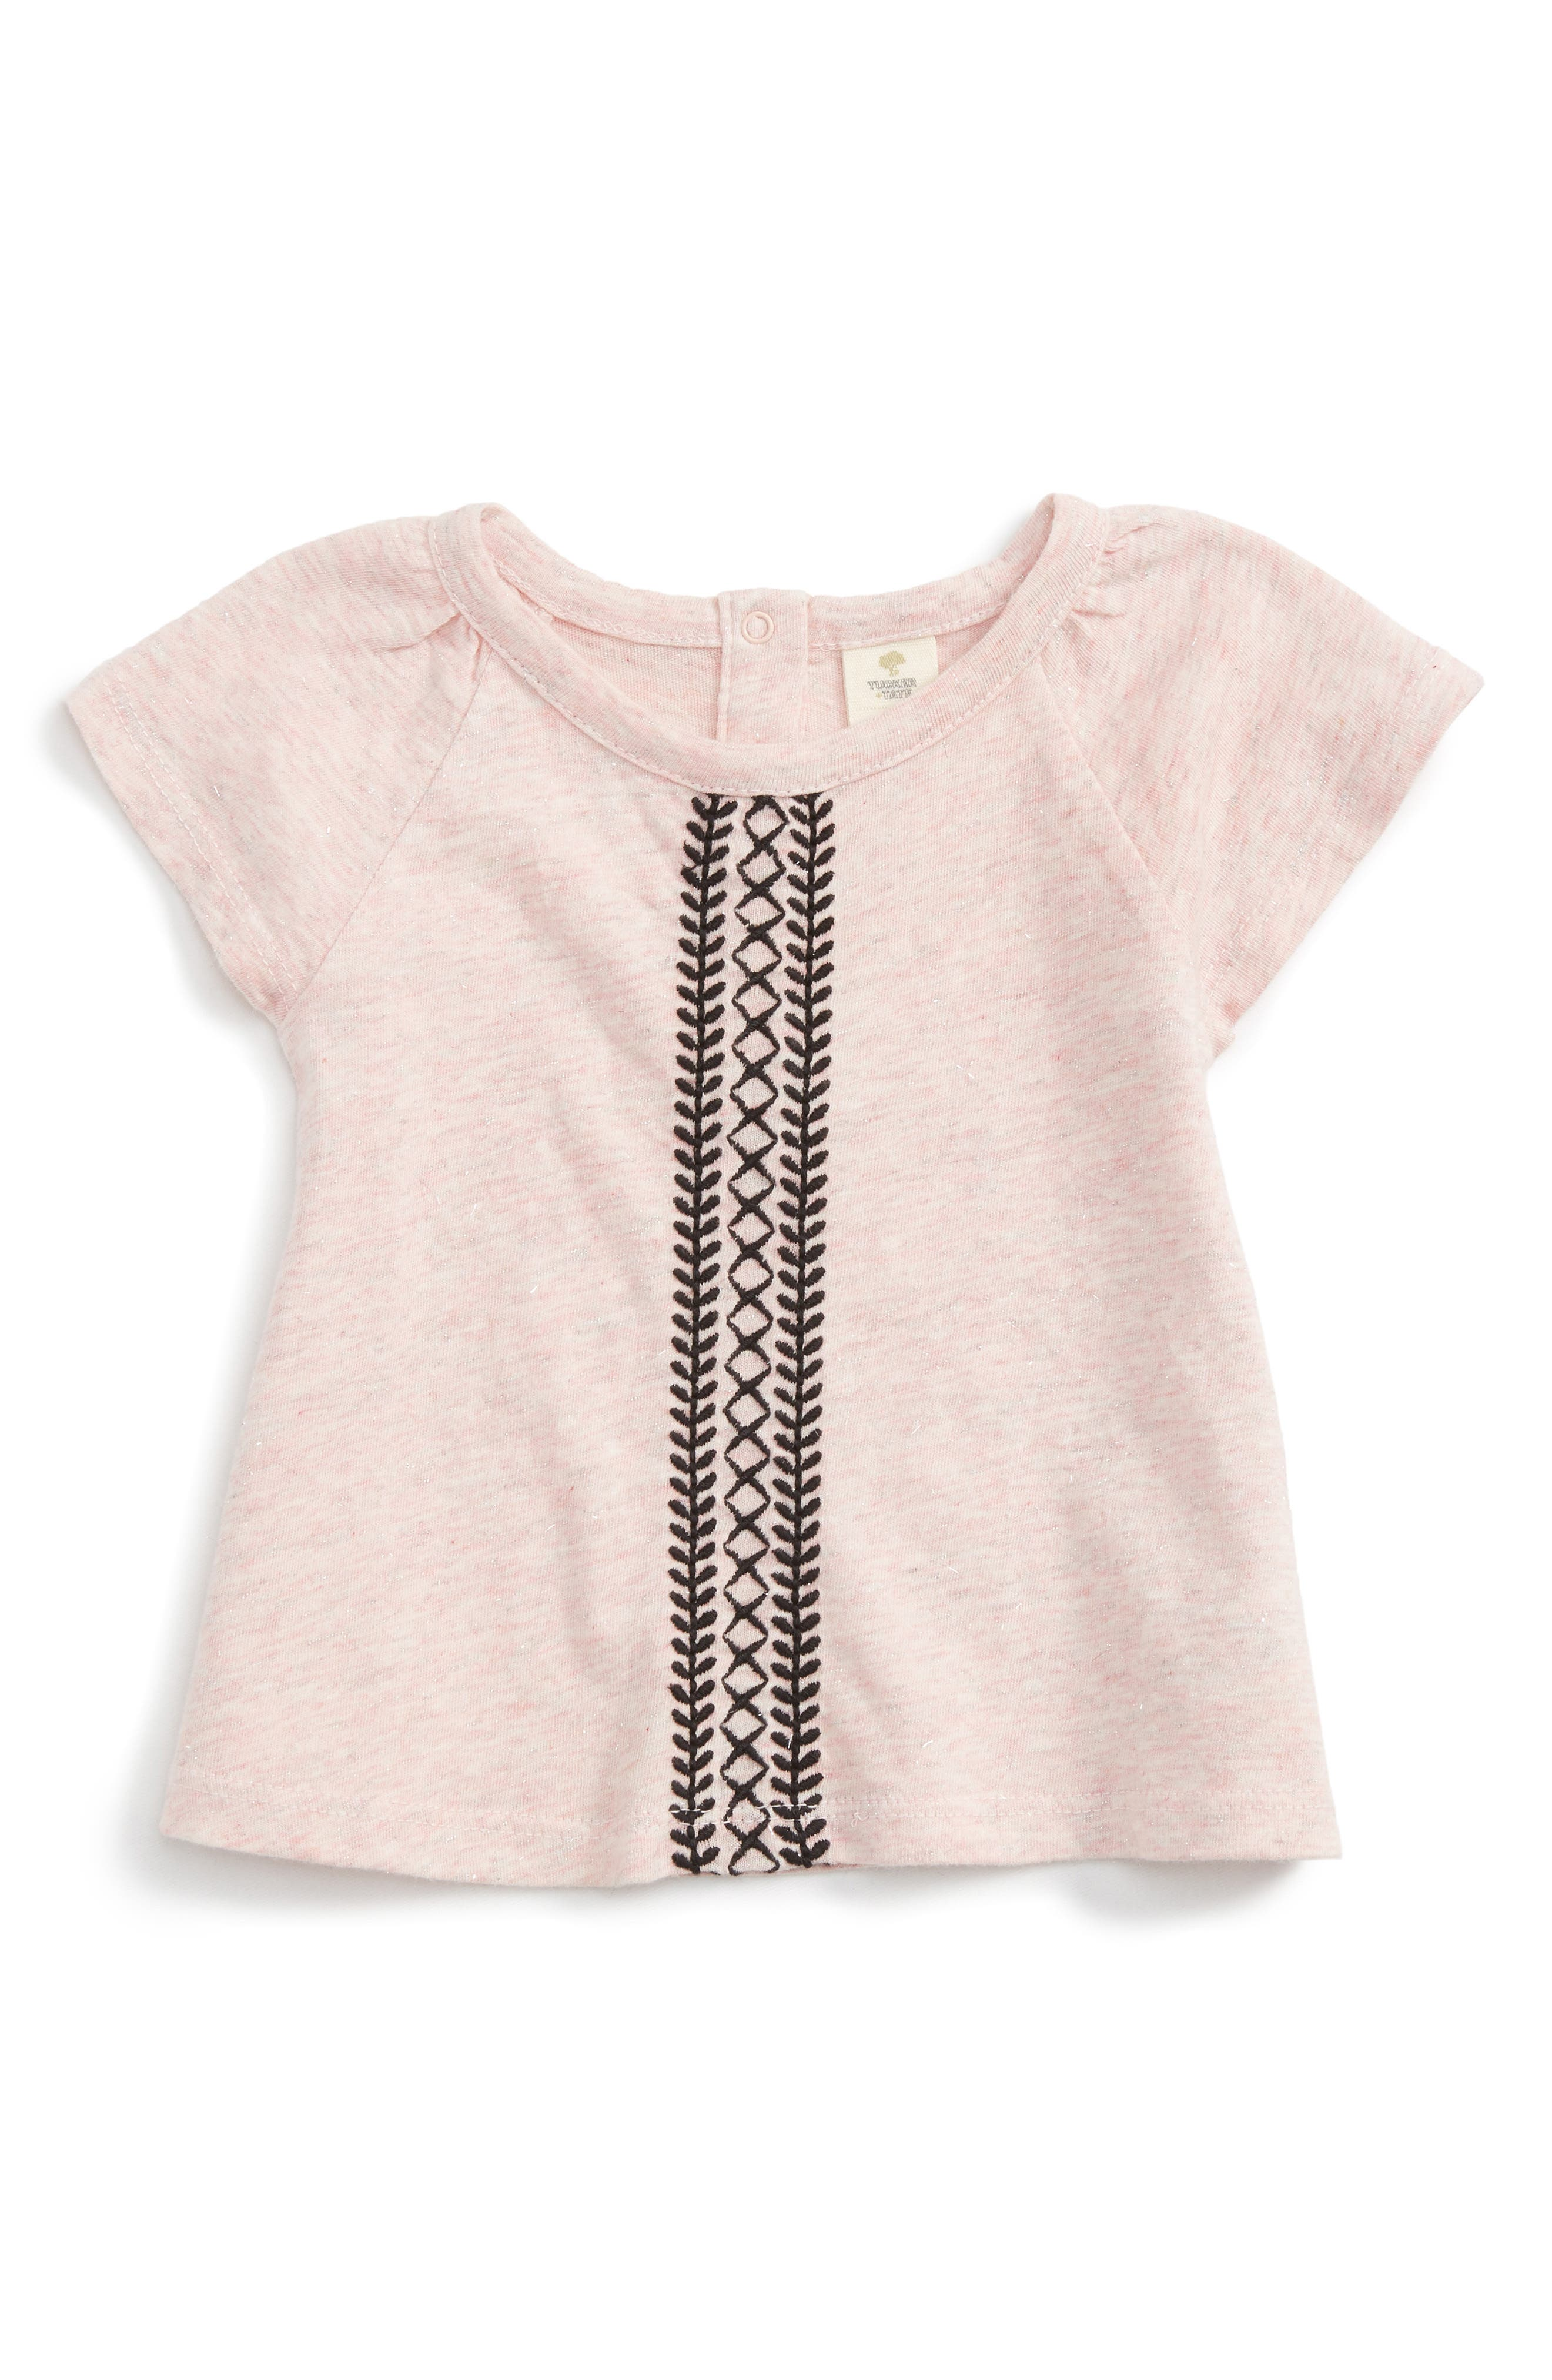 Main Image - Tucker + Tate Embroidered Sparkle Tee (Baby Girls)